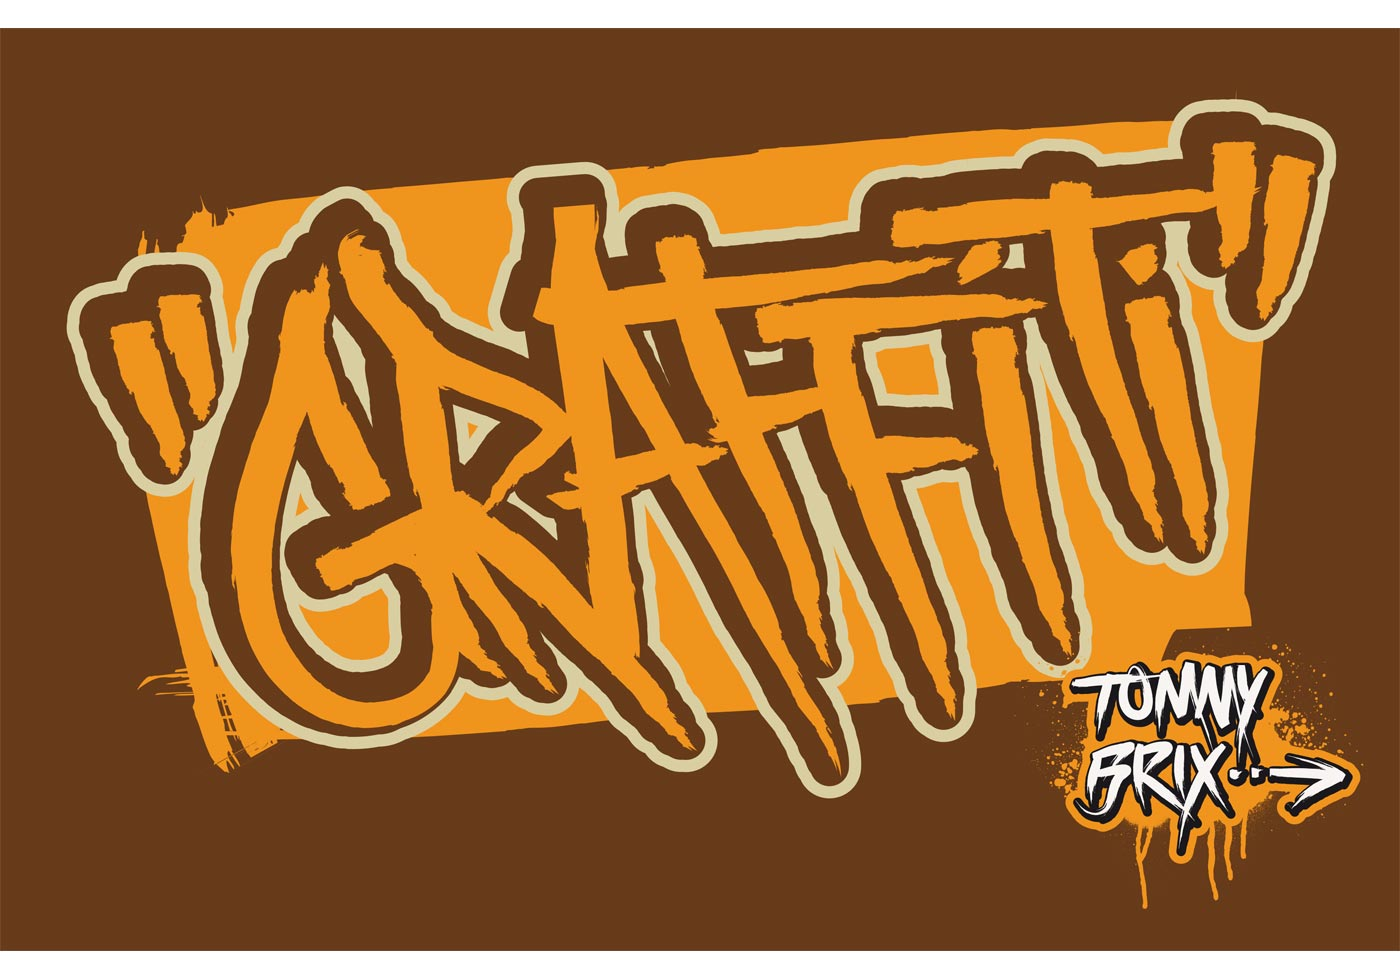 GRAFFITI Design Tommy Brix Download Free Vector Art